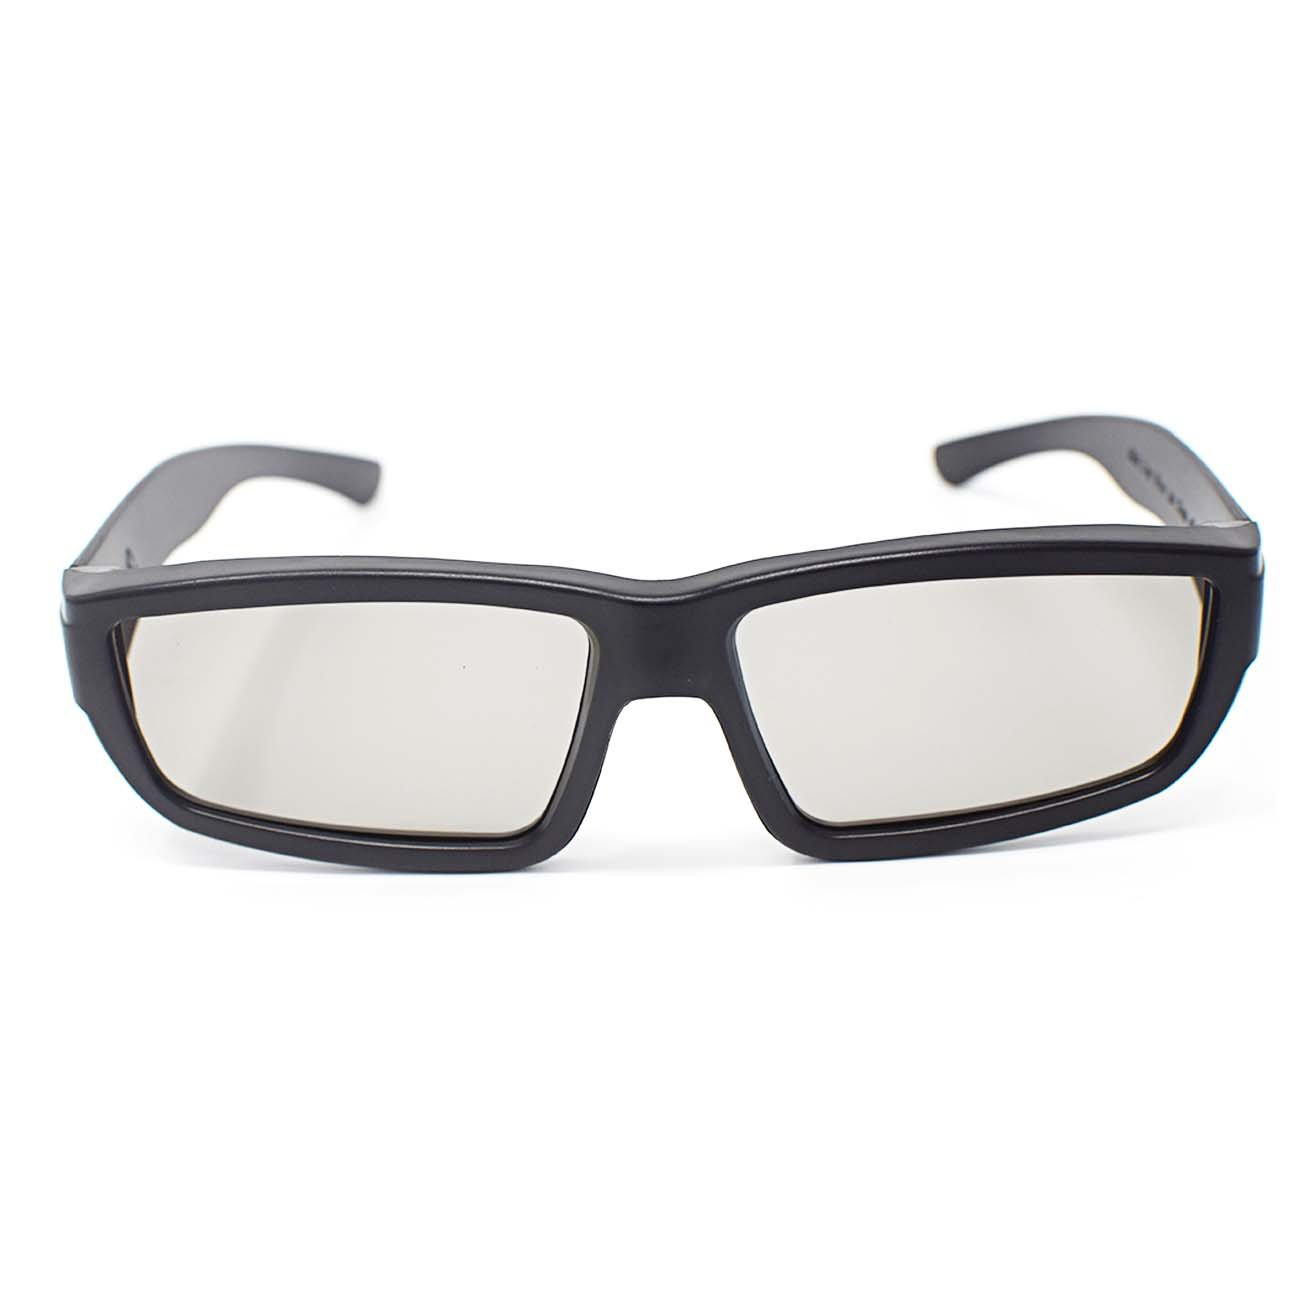 Ultra 4 Pairs of Black Adults Passive 3D Glasses Men Women Polorized For Use with RealD Movies Cinemas TVs and Projectors